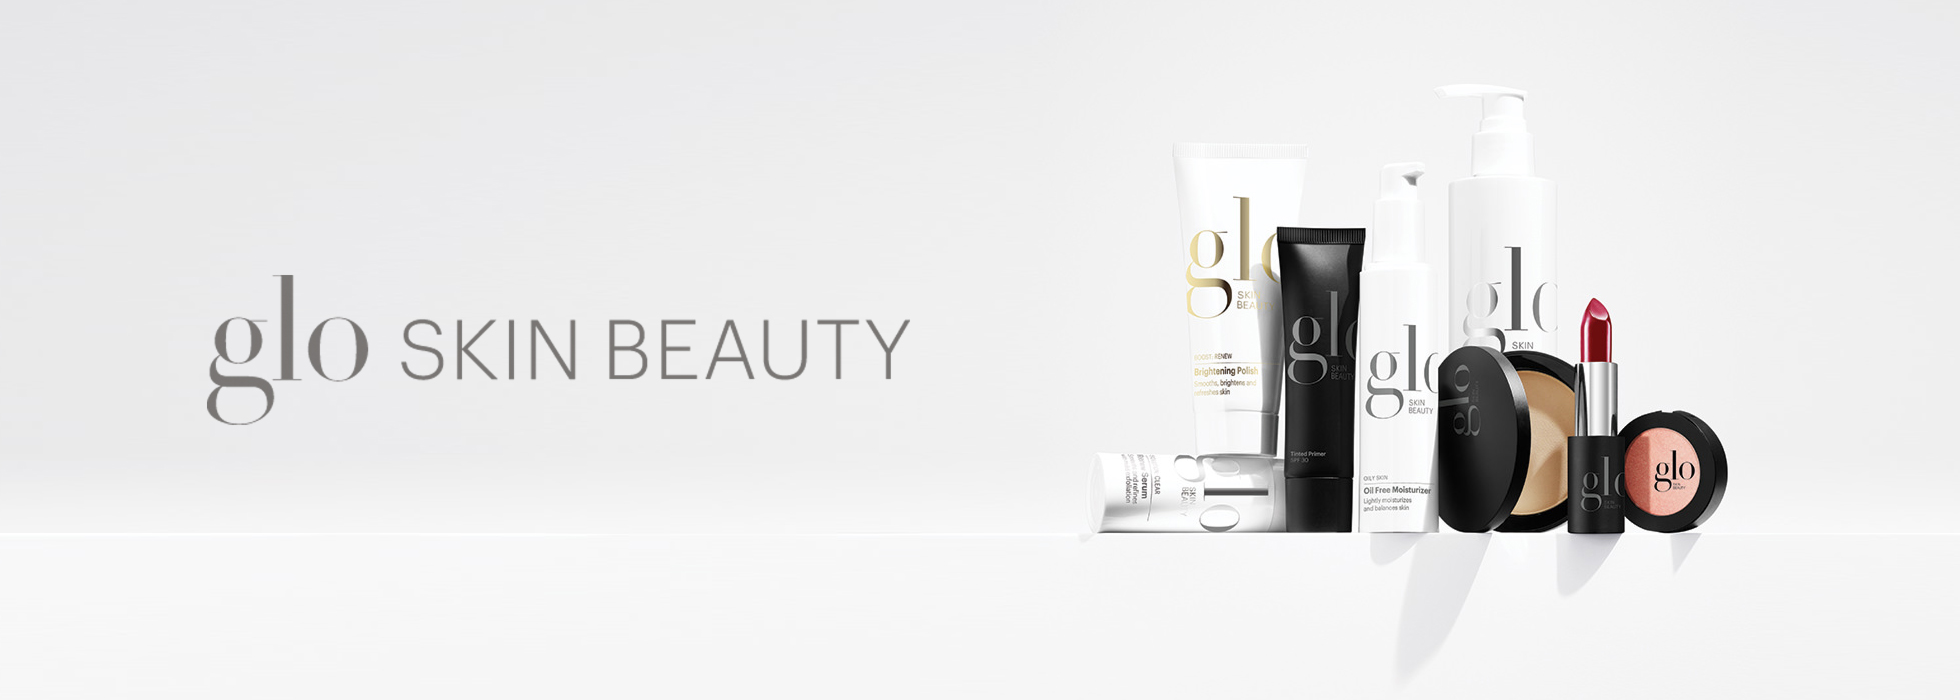 Art Beaute Bern glo skin beauty